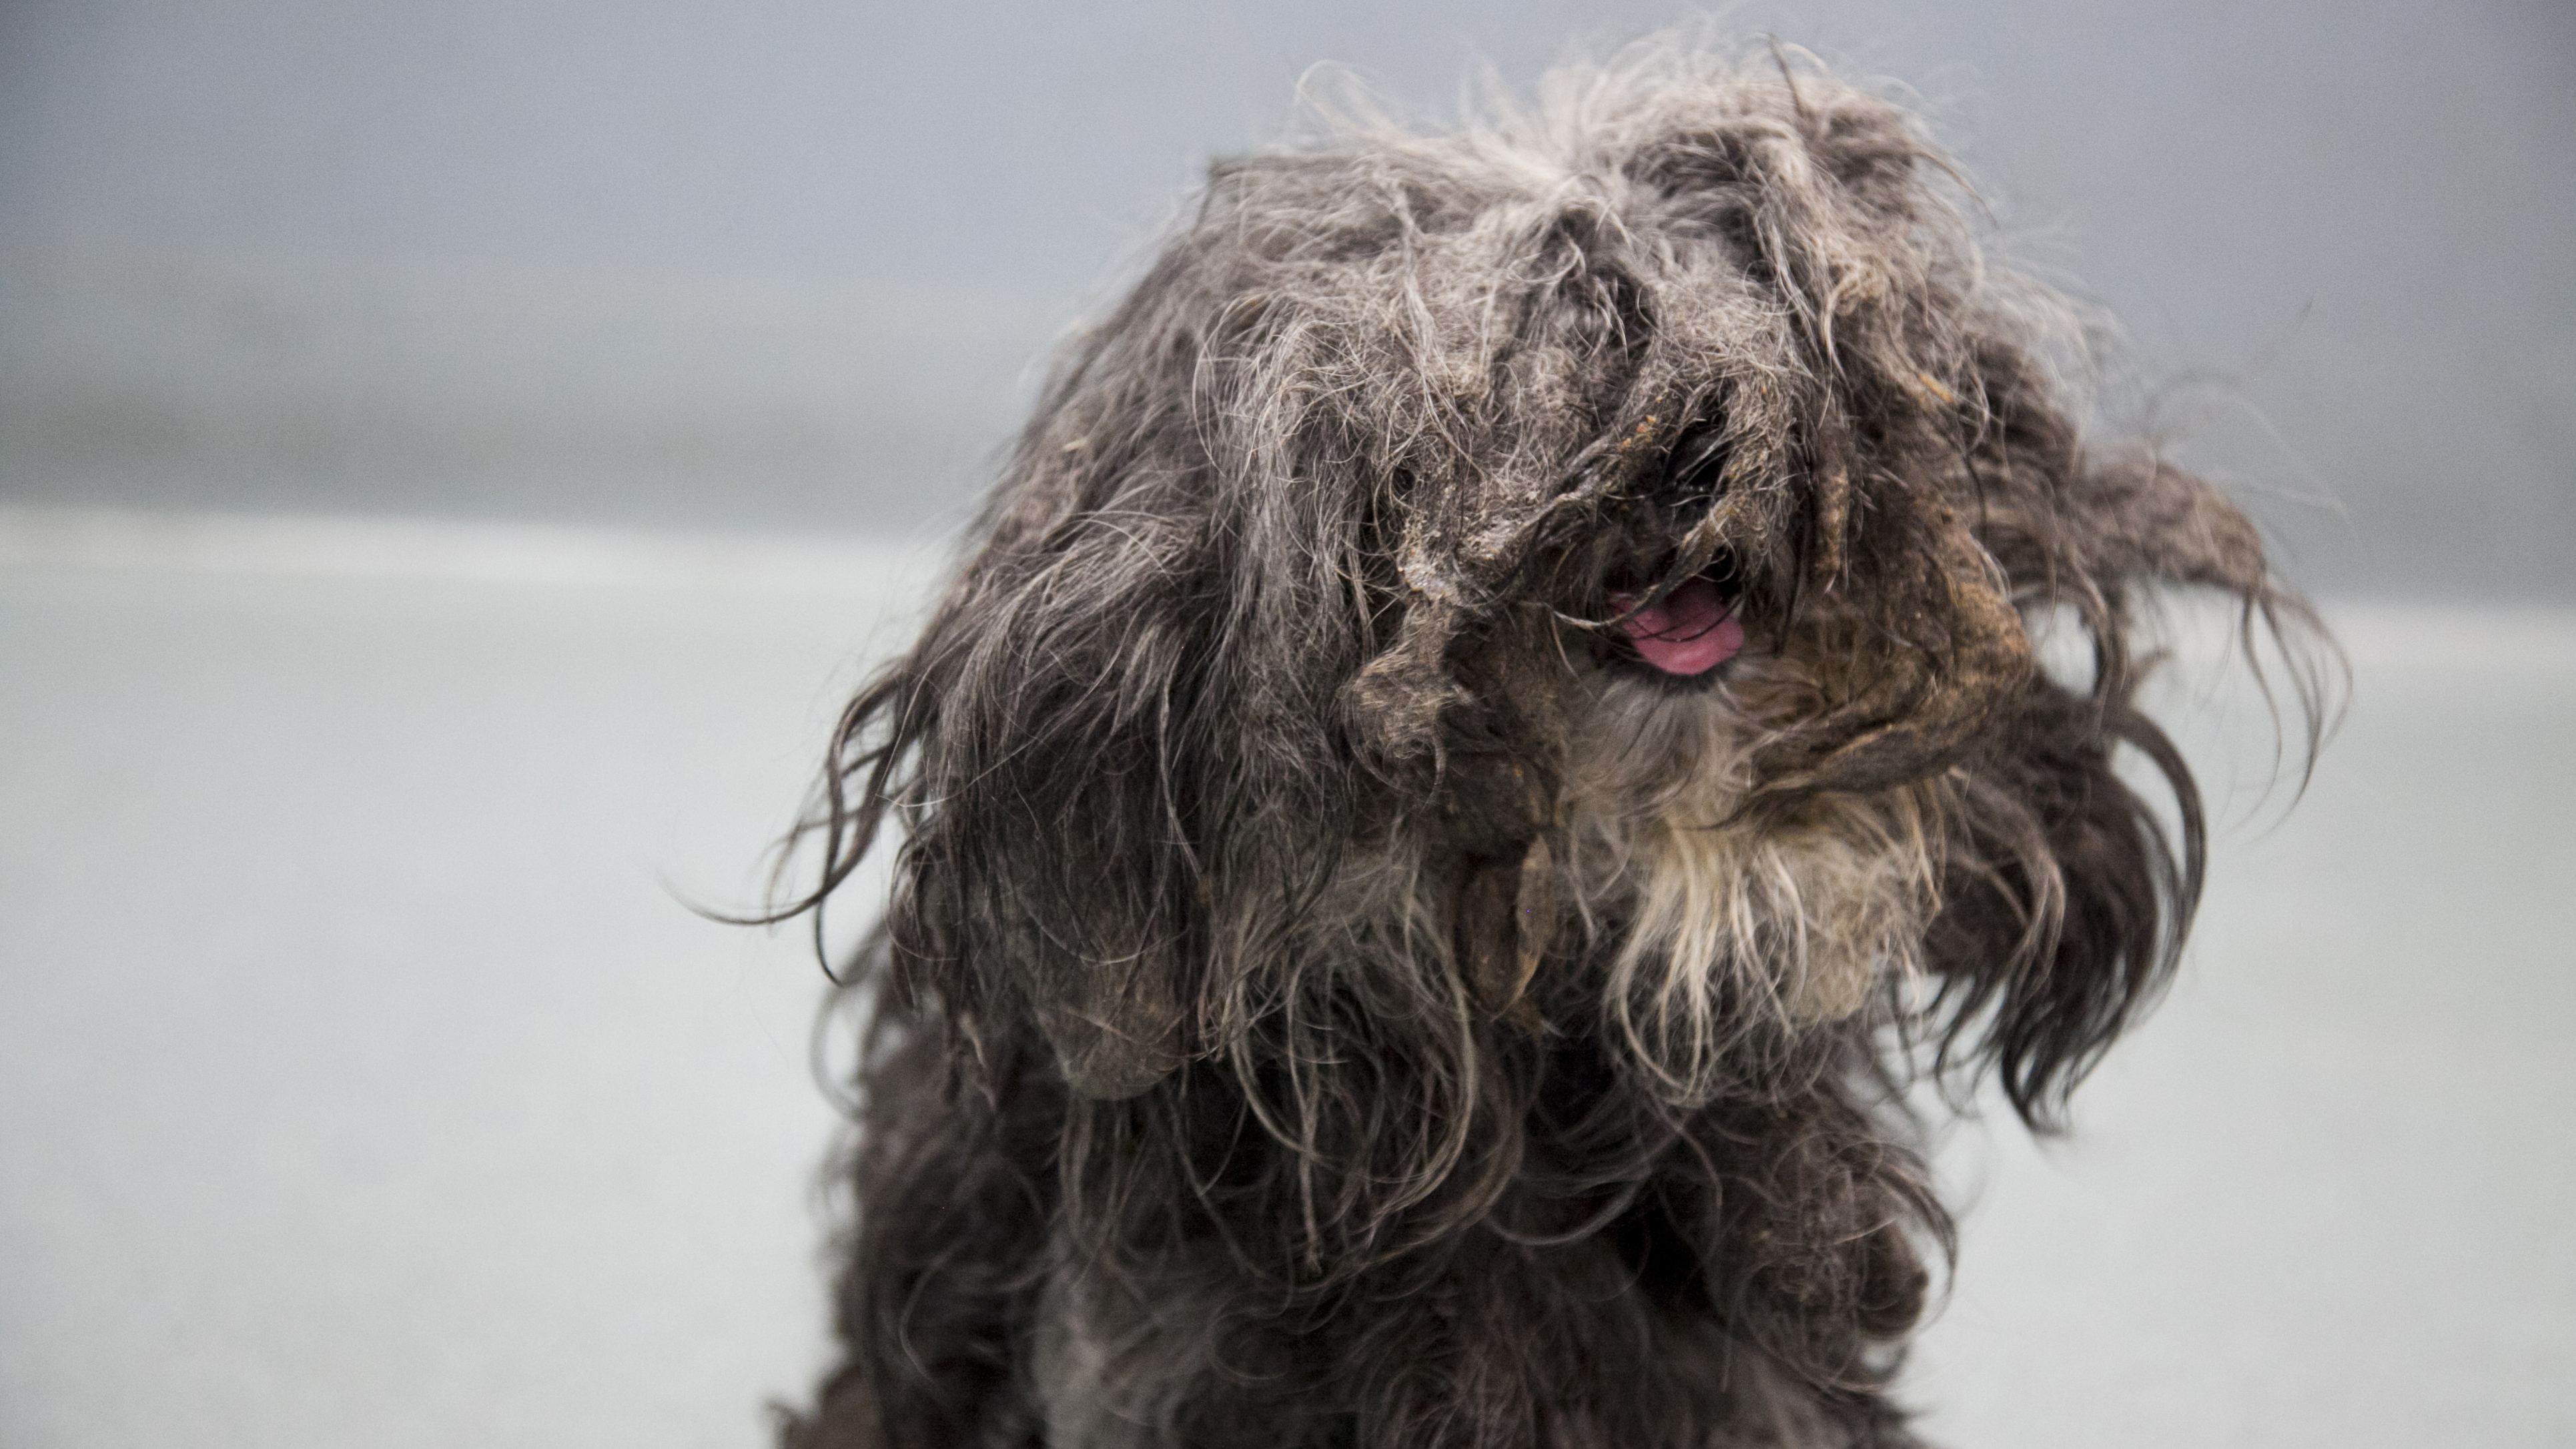 The dog was covered in over 650 grams of matted fur. (RSPCA)